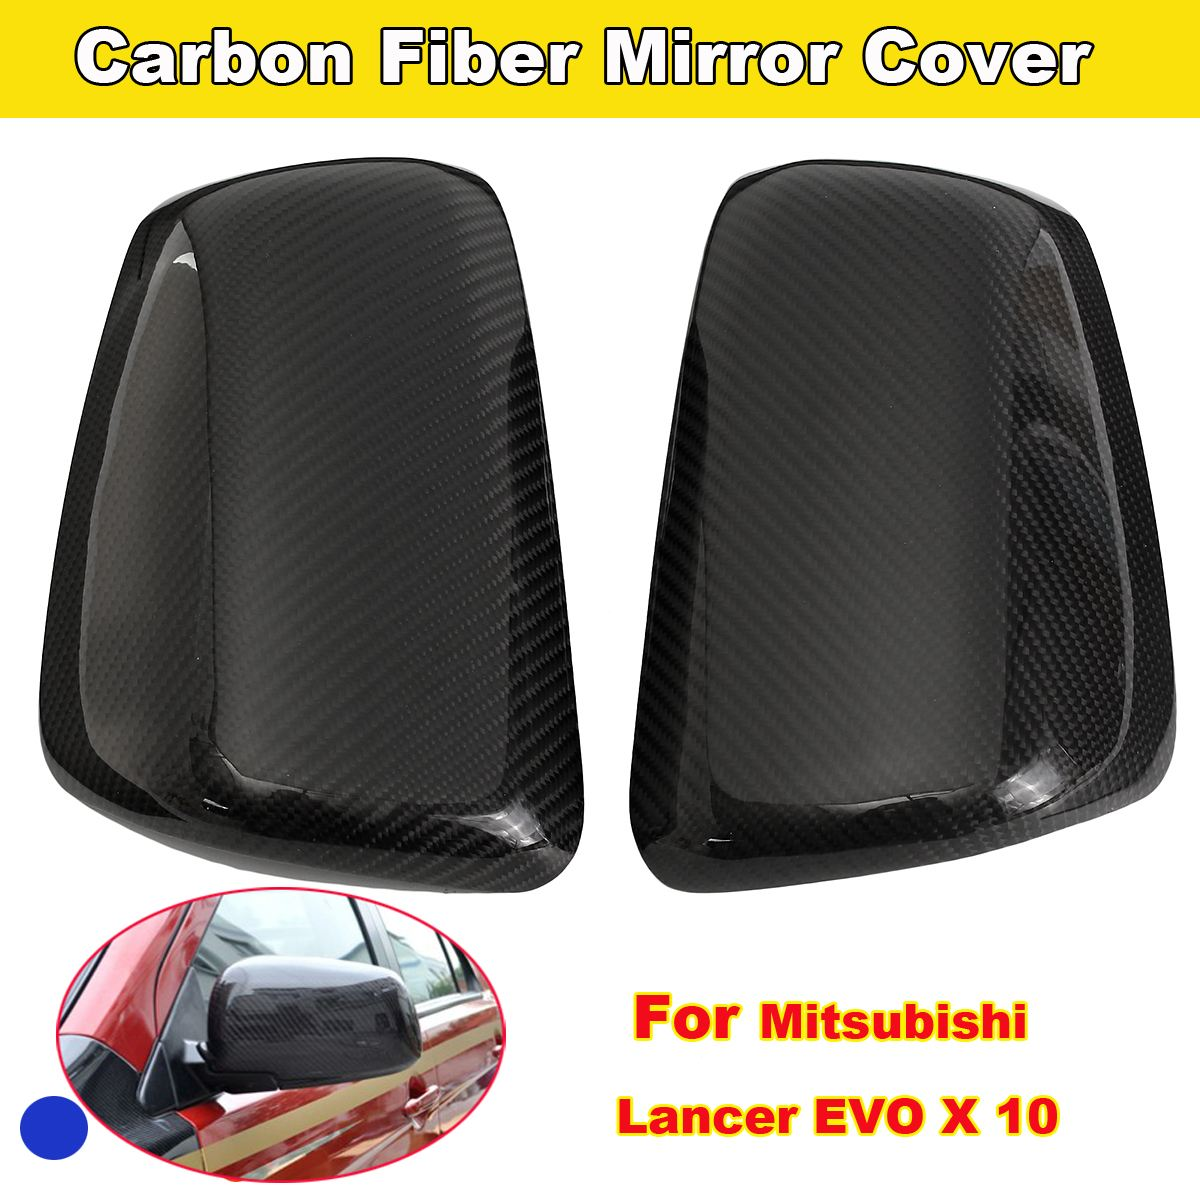 Replacement Car Styling Carbon Fiber ABS Rear Side Door Mirror Cover For For Mitsubishi Lancer EVO X 10 for nissan r35 gtr carbon fiber door mirror inner panel trinagle